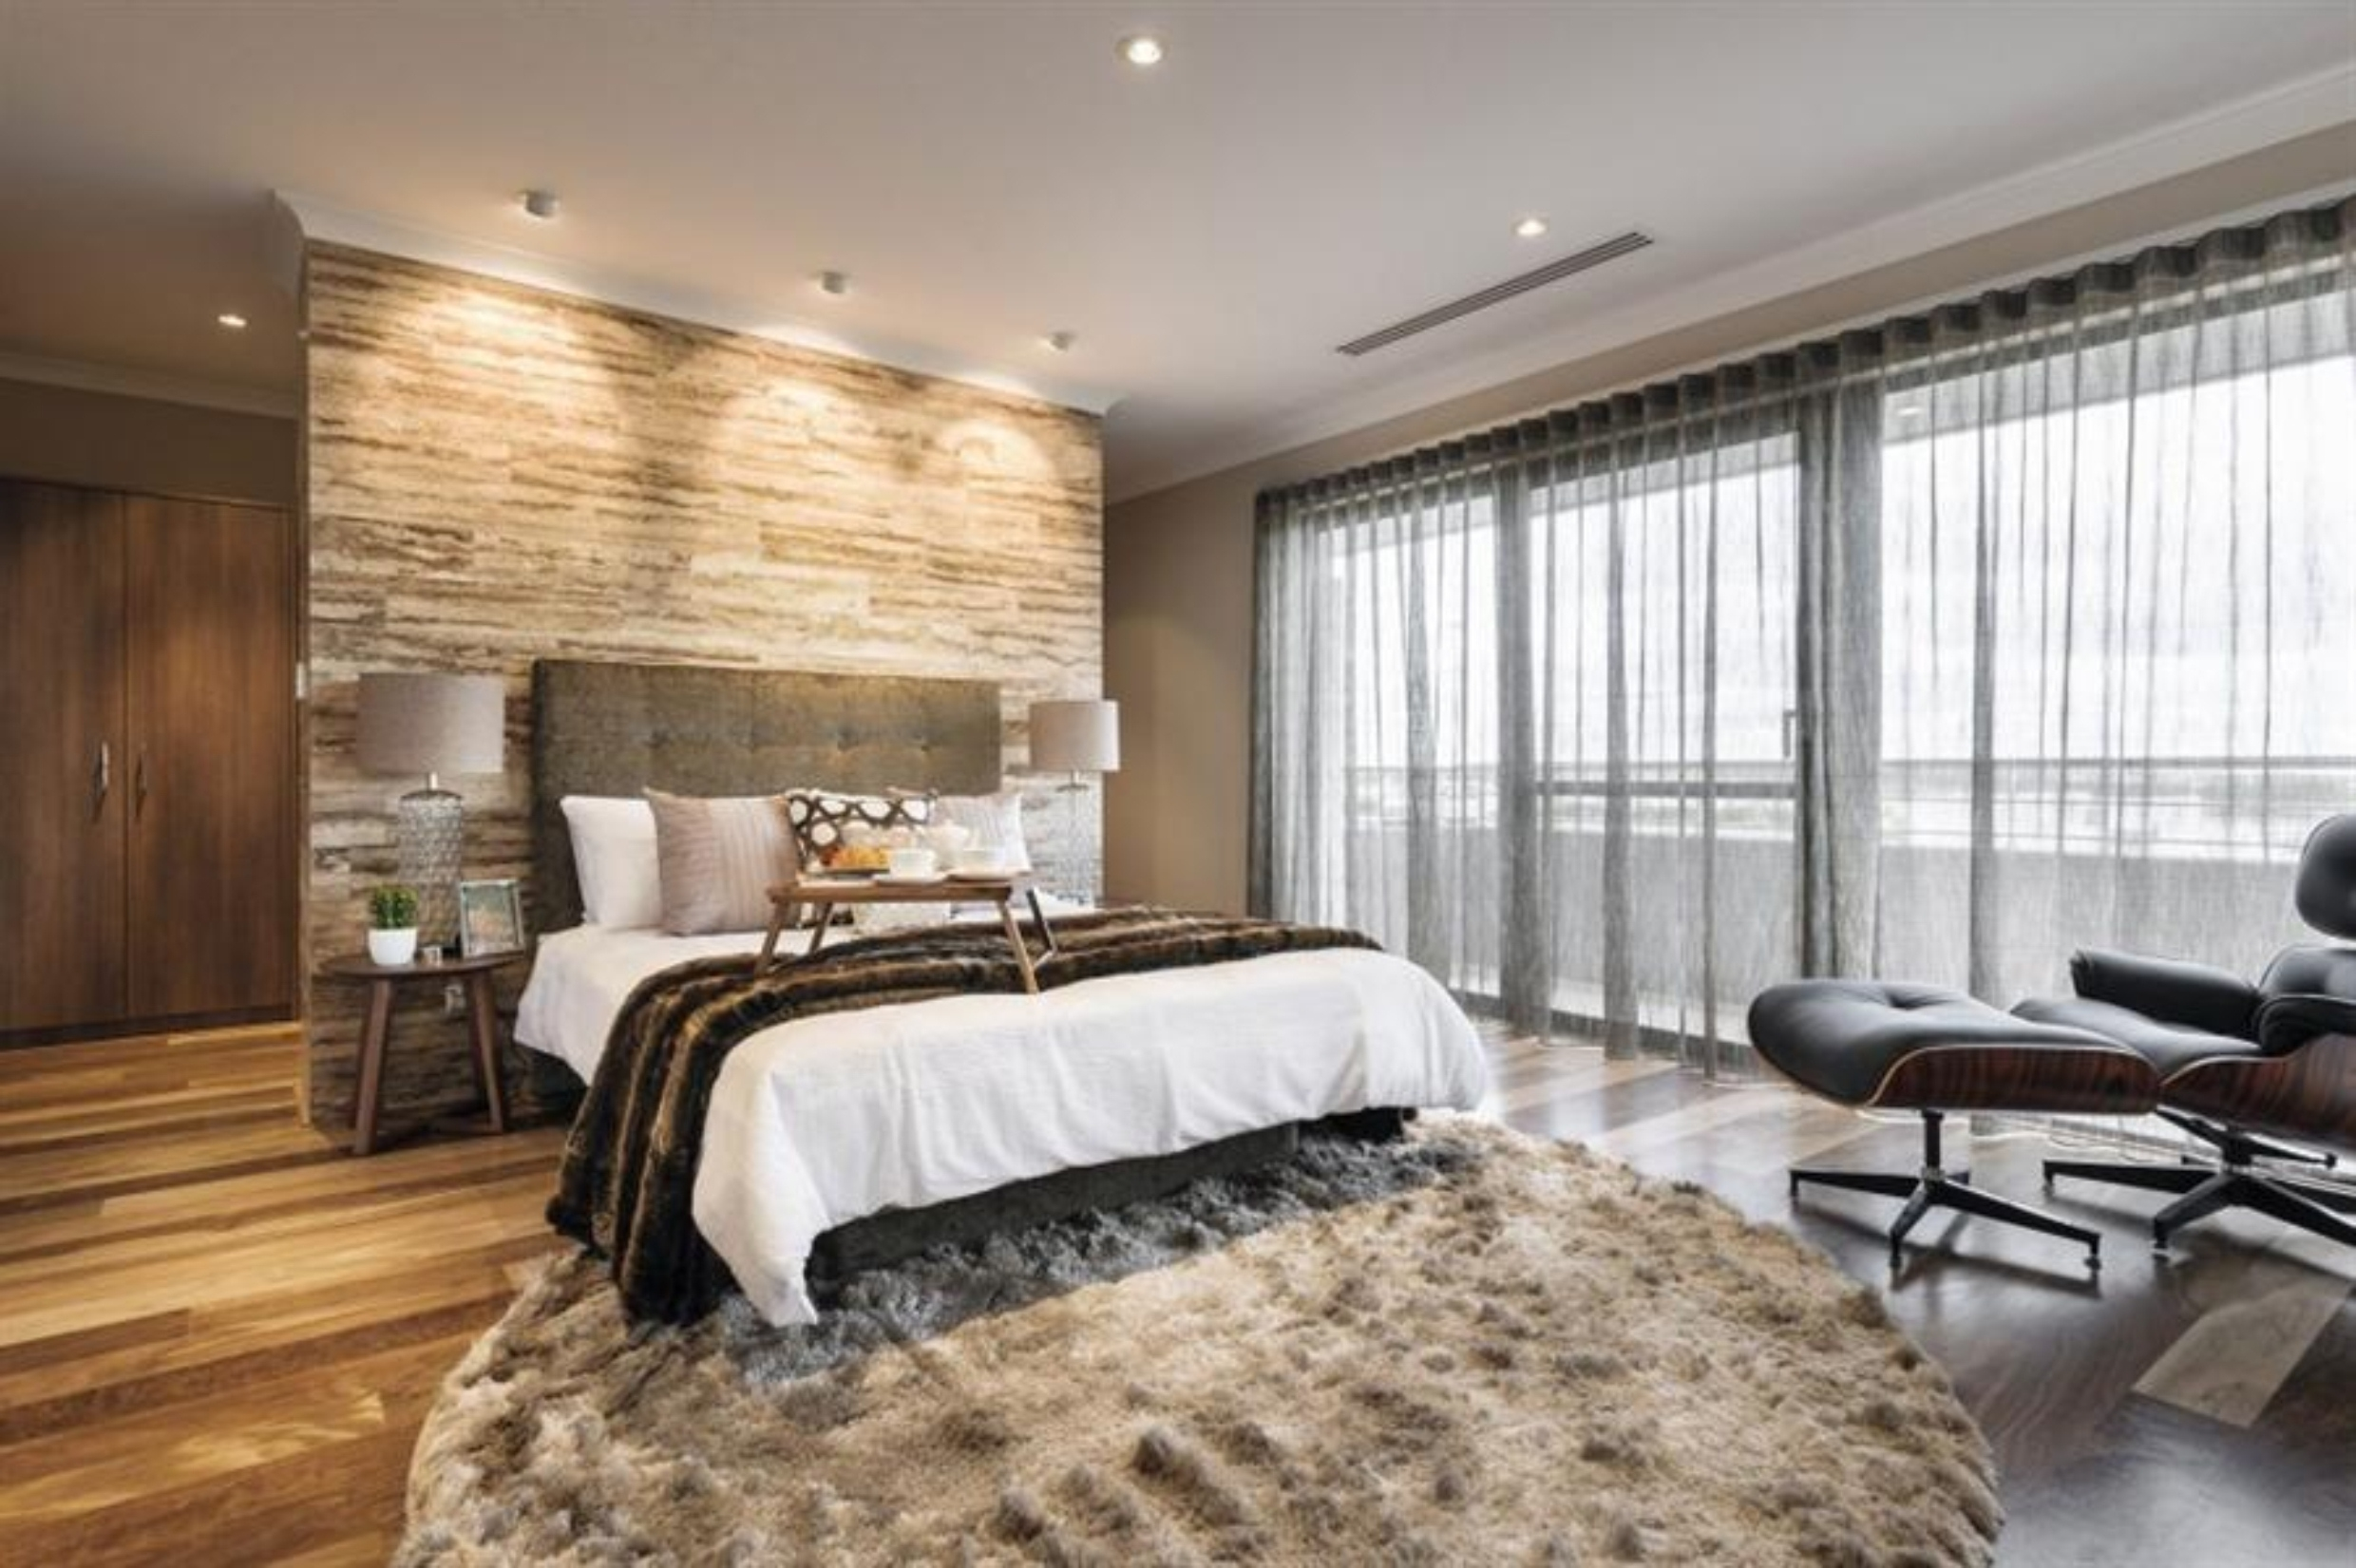 rugs in bedroom attractive bedroom design with extra large round area rugs and stunning  headboard GAMTKNP